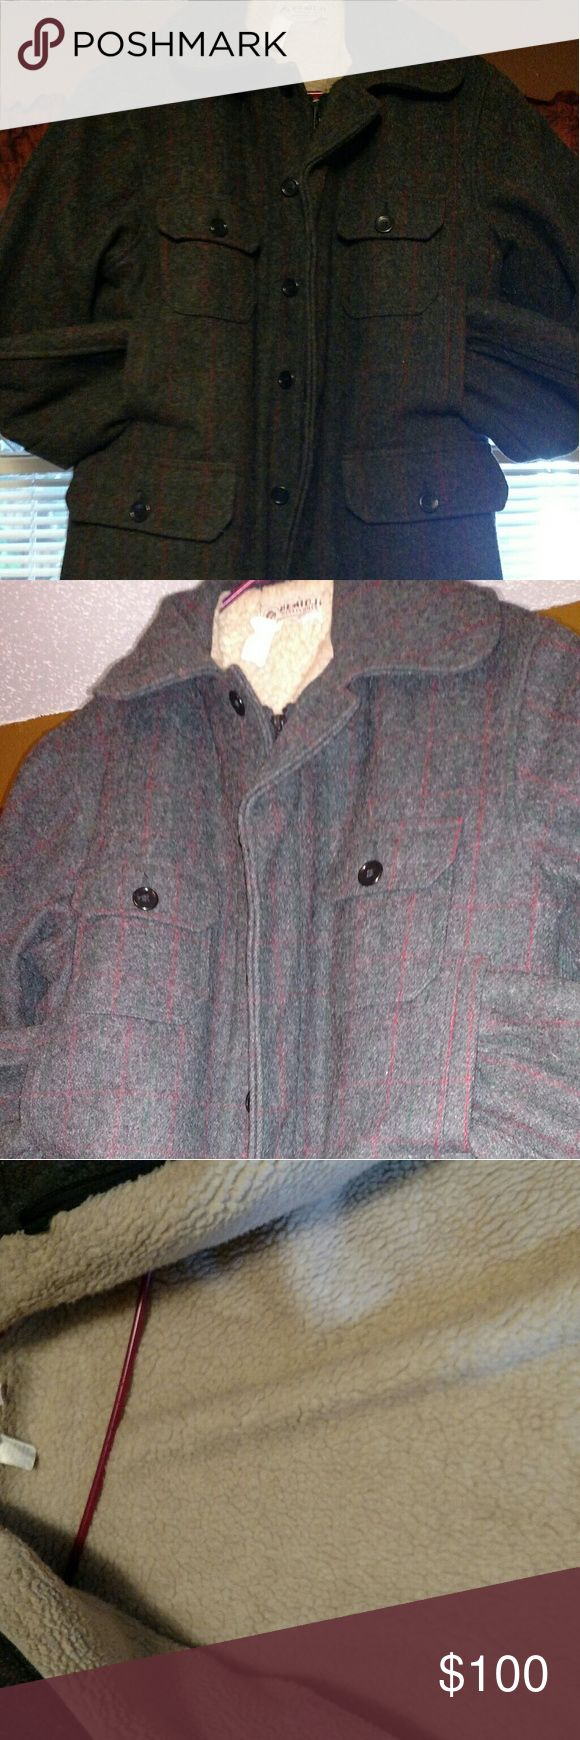 !No low-balling!/Vintage Malone Bemidj Wool coat. Vintage Malone Bemidj Wool Mills Hunting coat. This is a very nice pre owned Insulated coat it Zips and buttons up. No holes rips stains. Size 44 witch is a XL Bemidji Woolen Mills Jackets & Coats